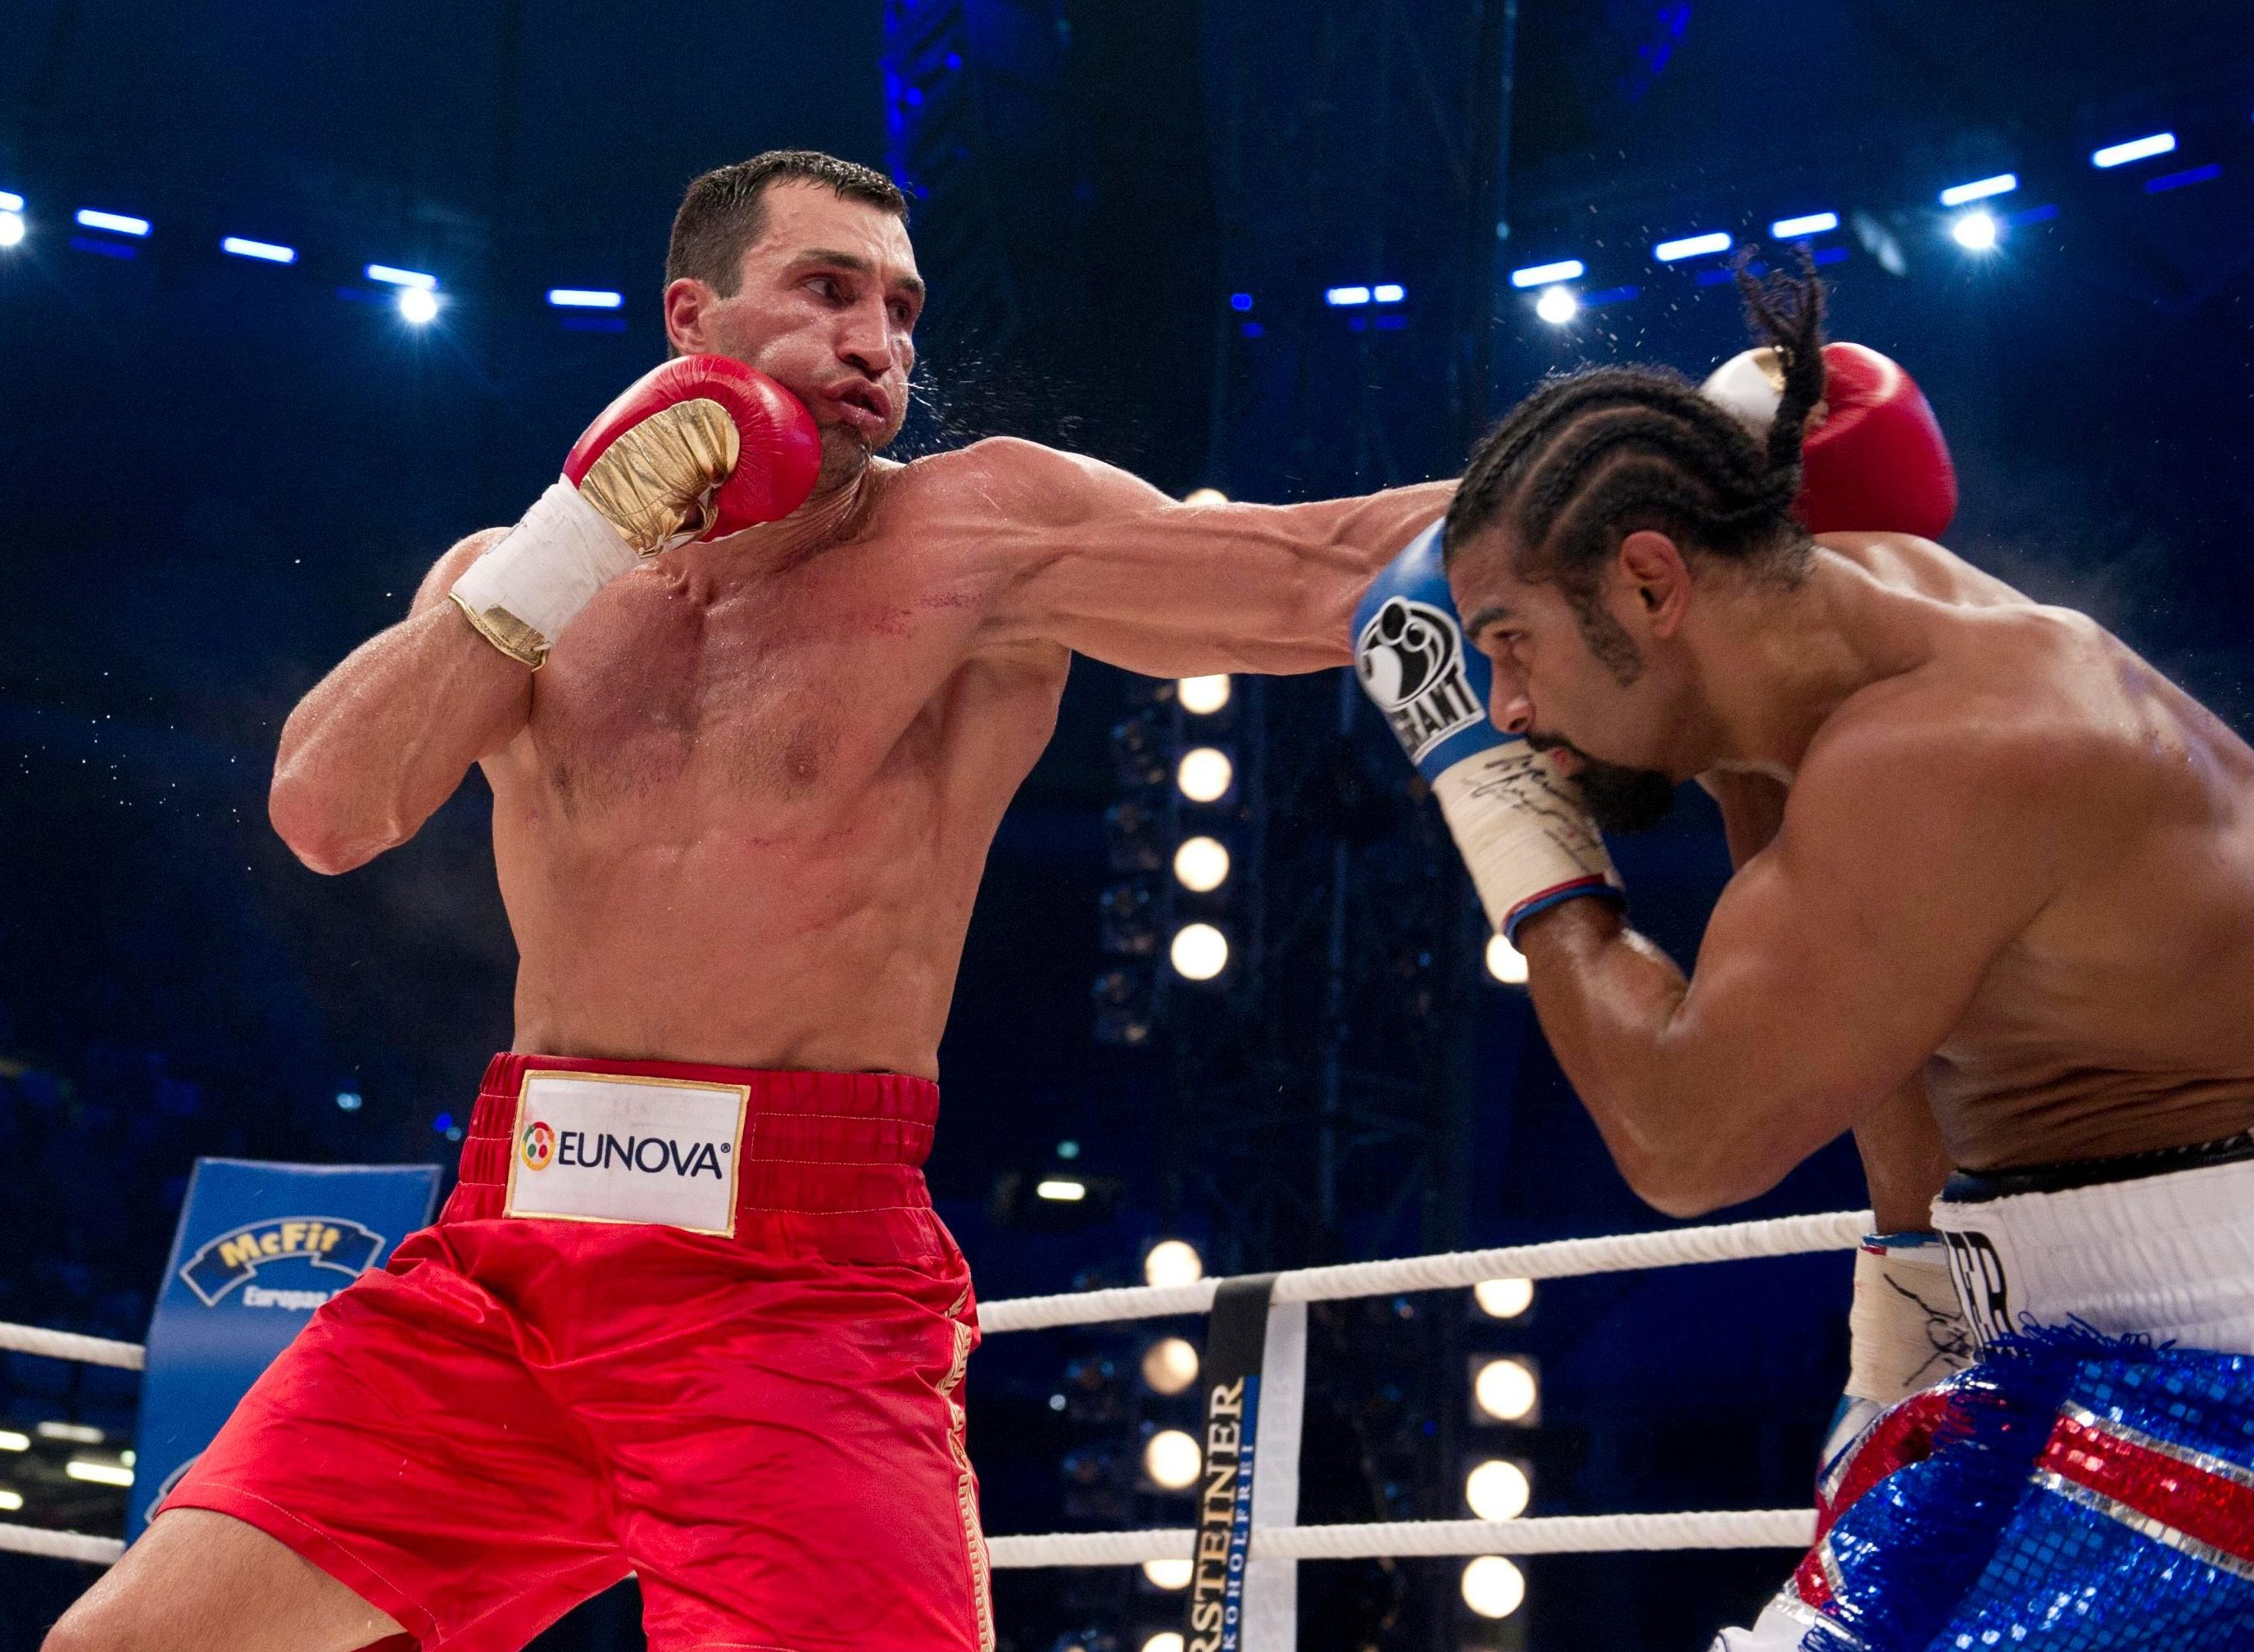 Haye fought Wladimir Klitschko in Hamburg in 2011 in a world heavyweight unification bout, but lost to the Ukrainian on points